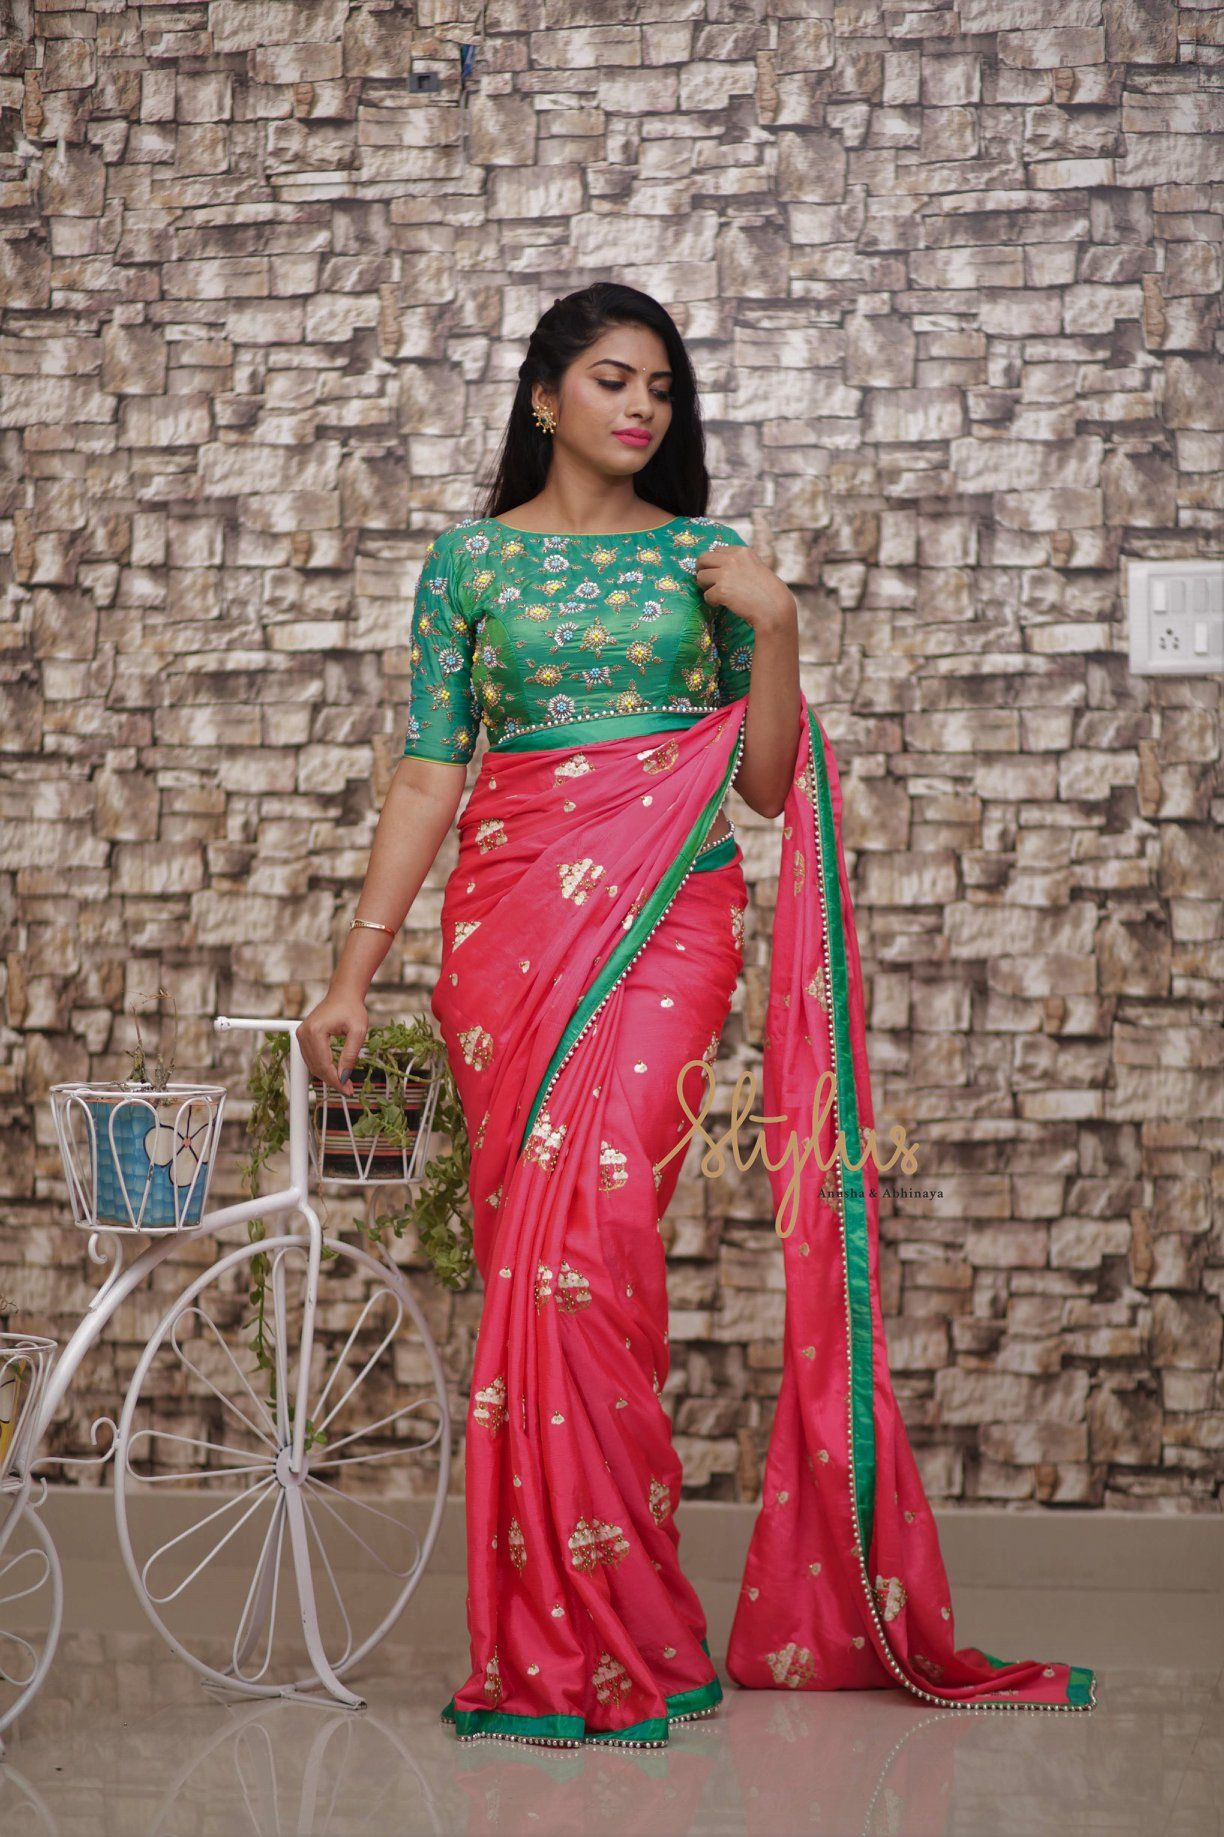 3197d94dd4f543 Stunning pink color saree and green color boat neck blouse. Saree and  blouse with hand